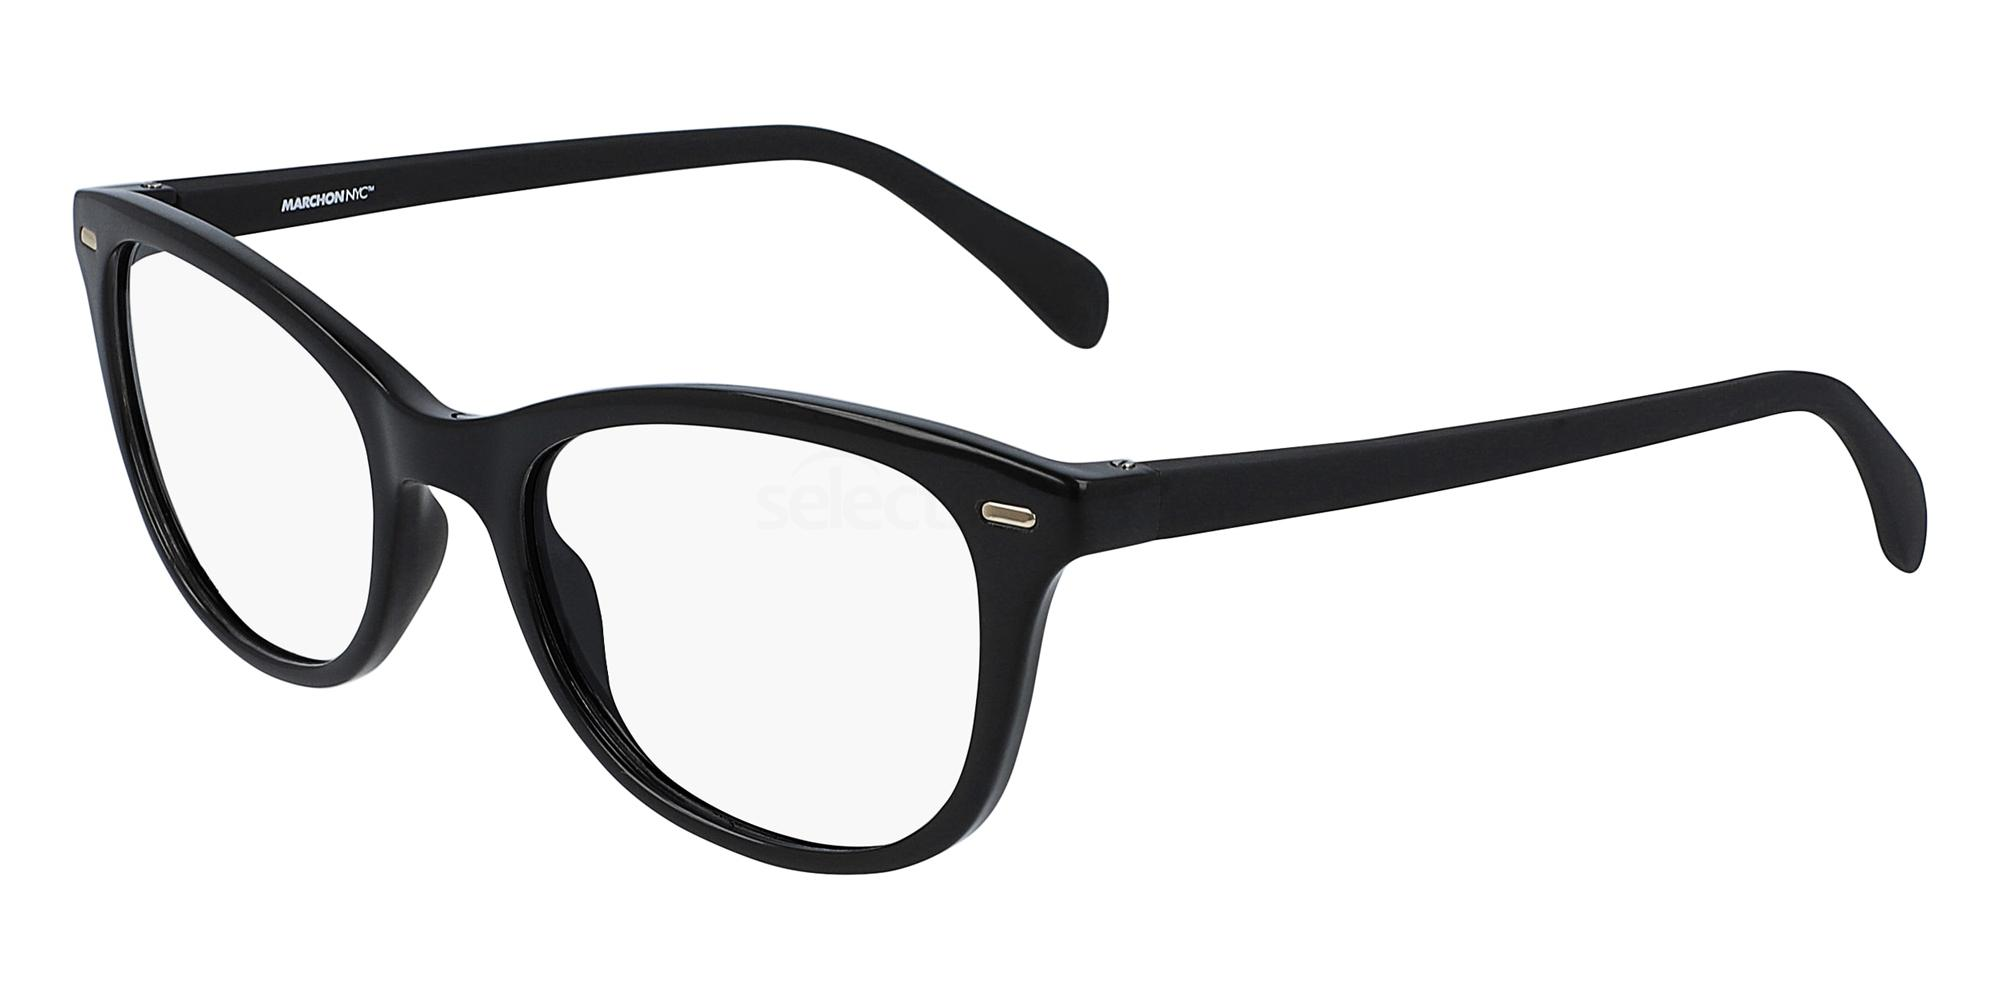 001 M-5803 Glasses, Marchon